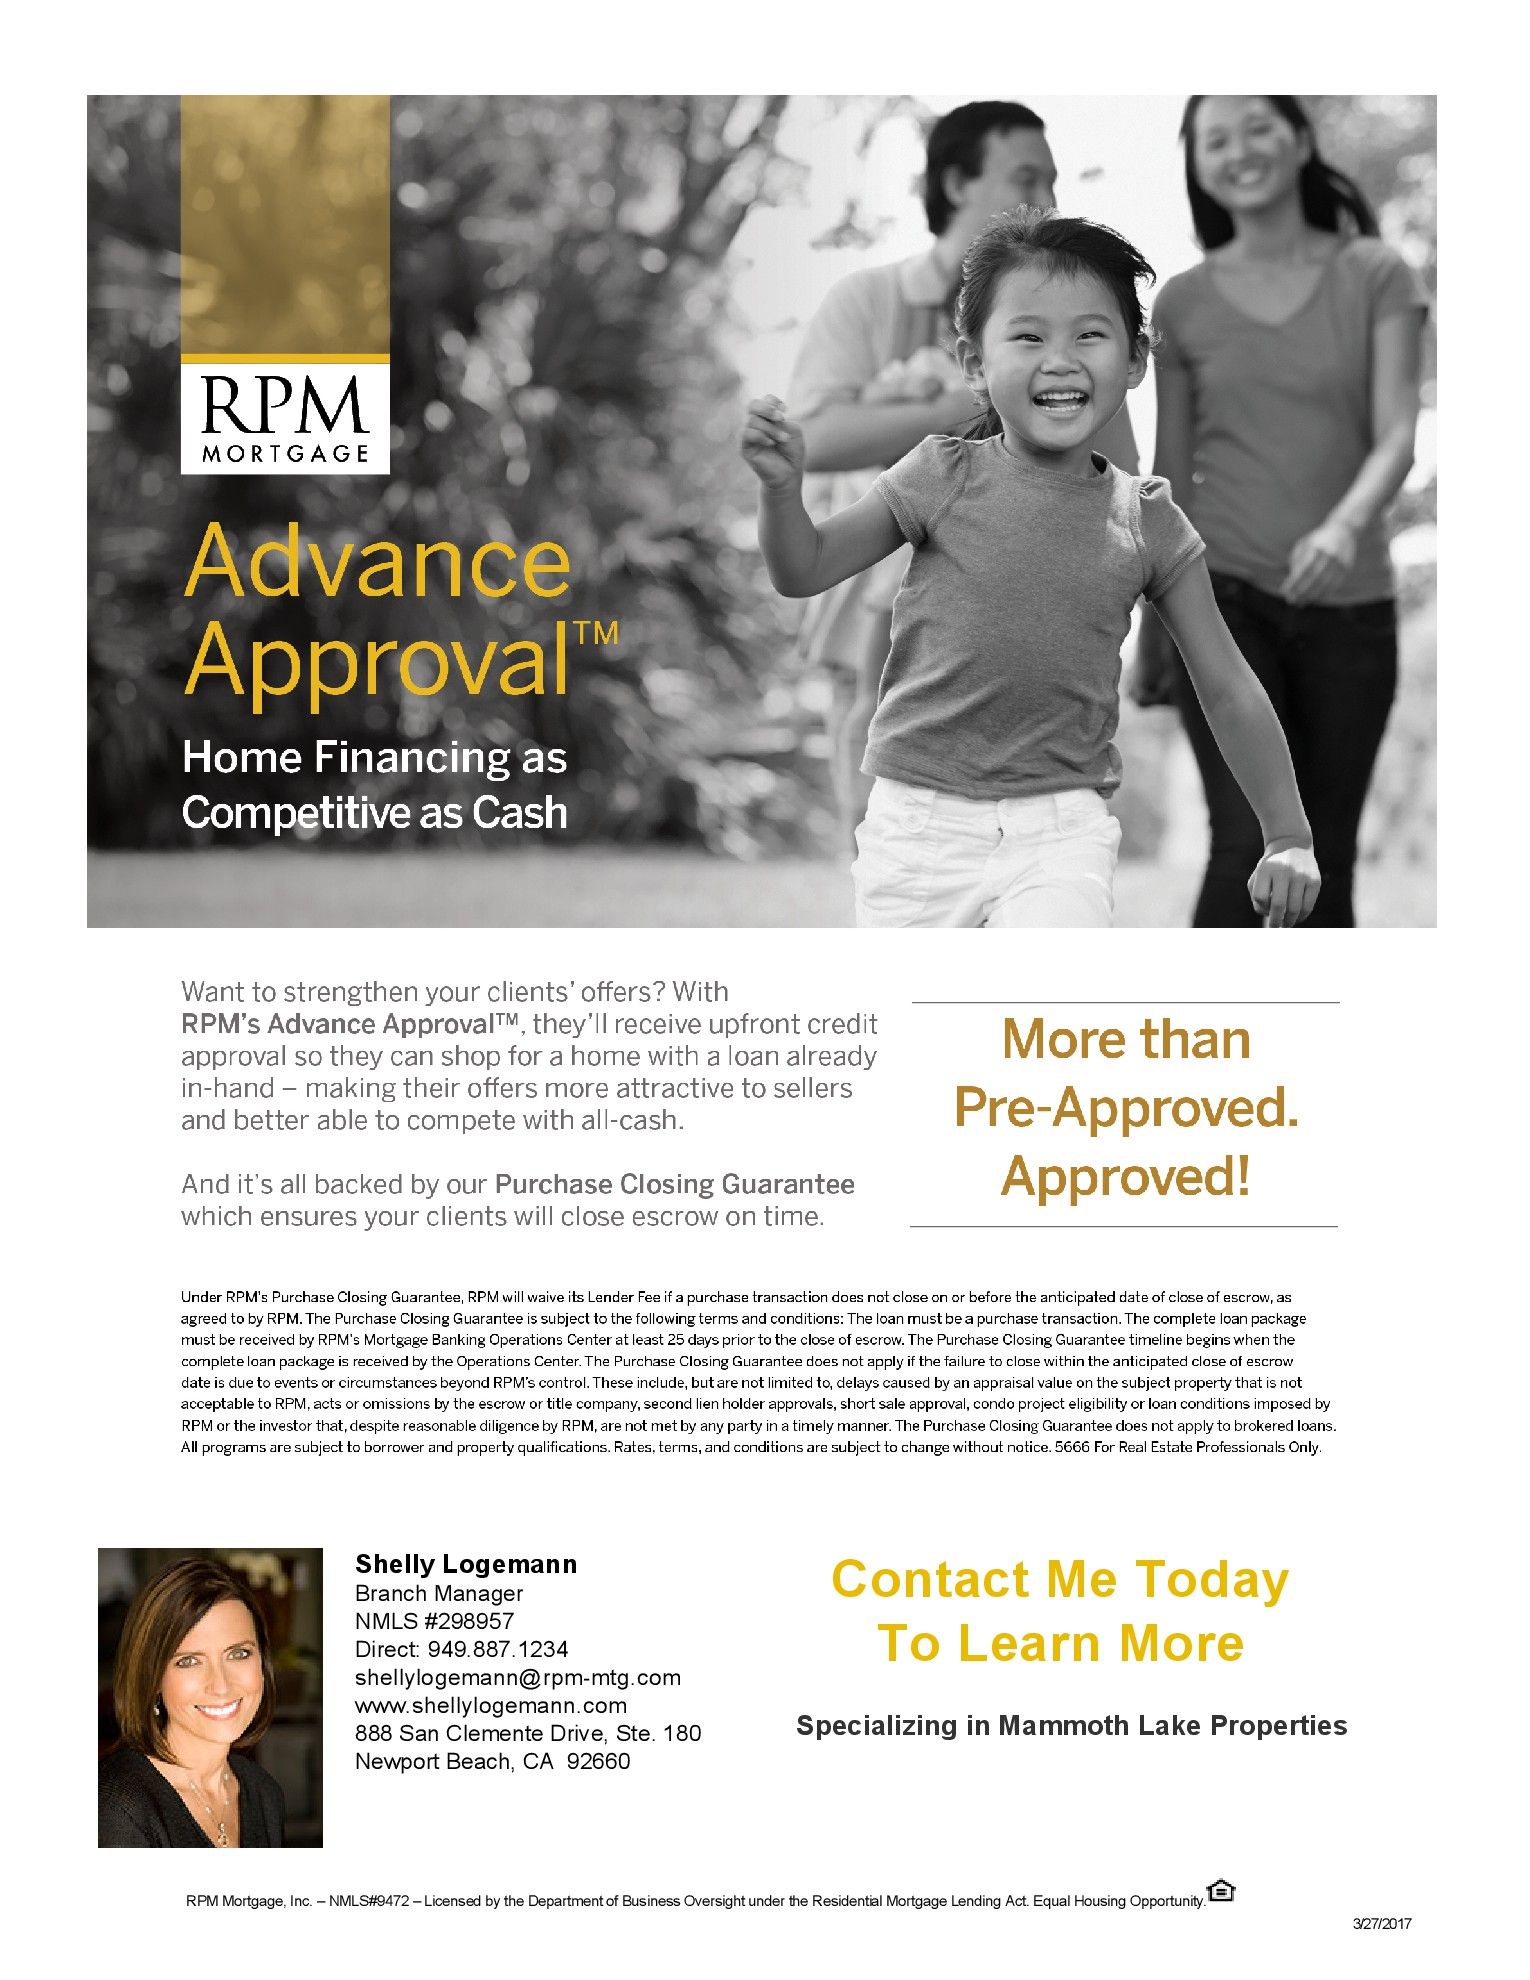 Advanced Approval flyer